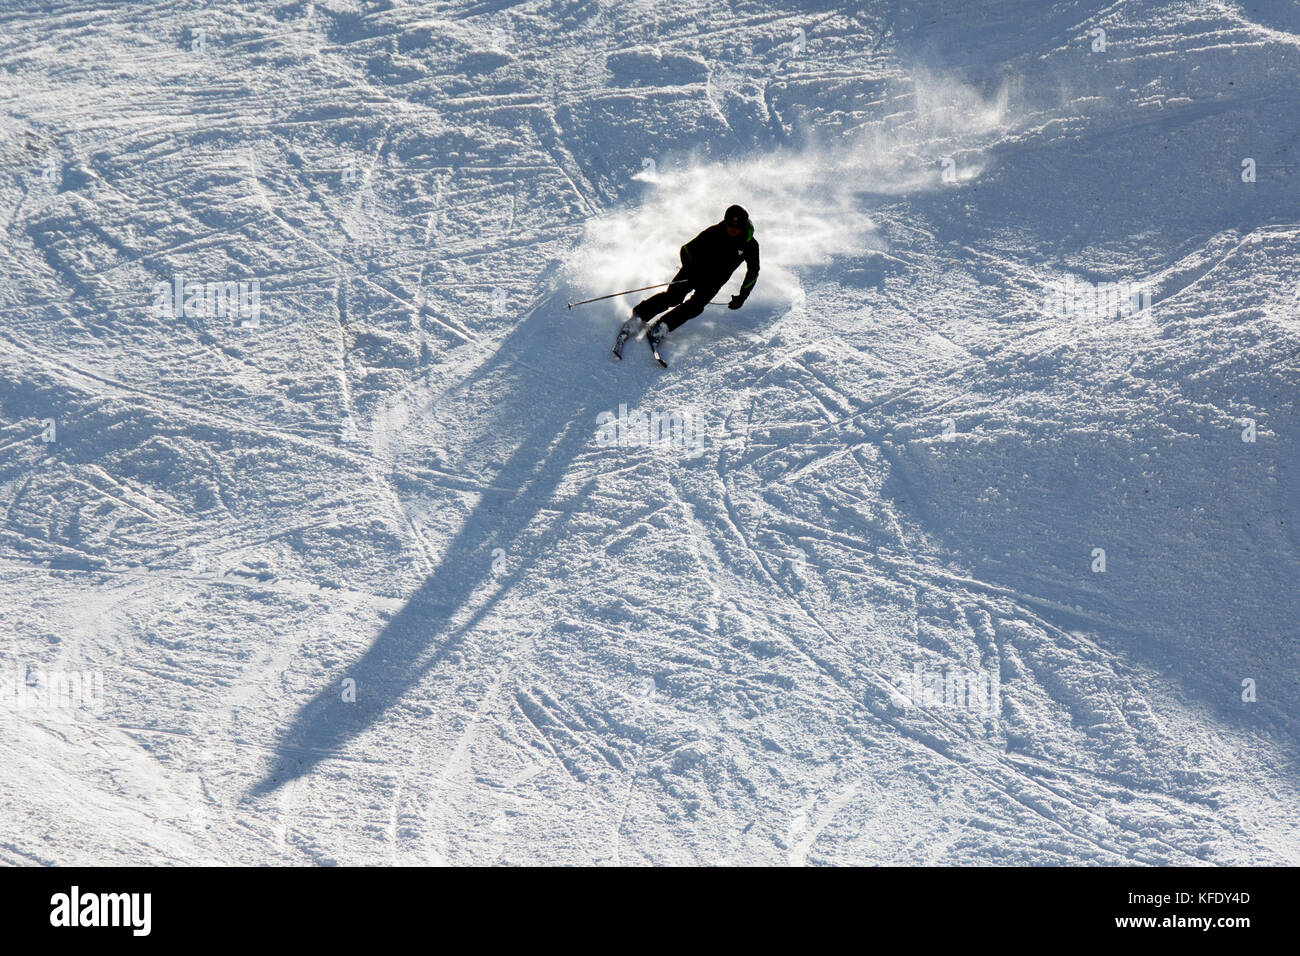 terminillo, italy - january 02, 2015: skiers on the slope of ski